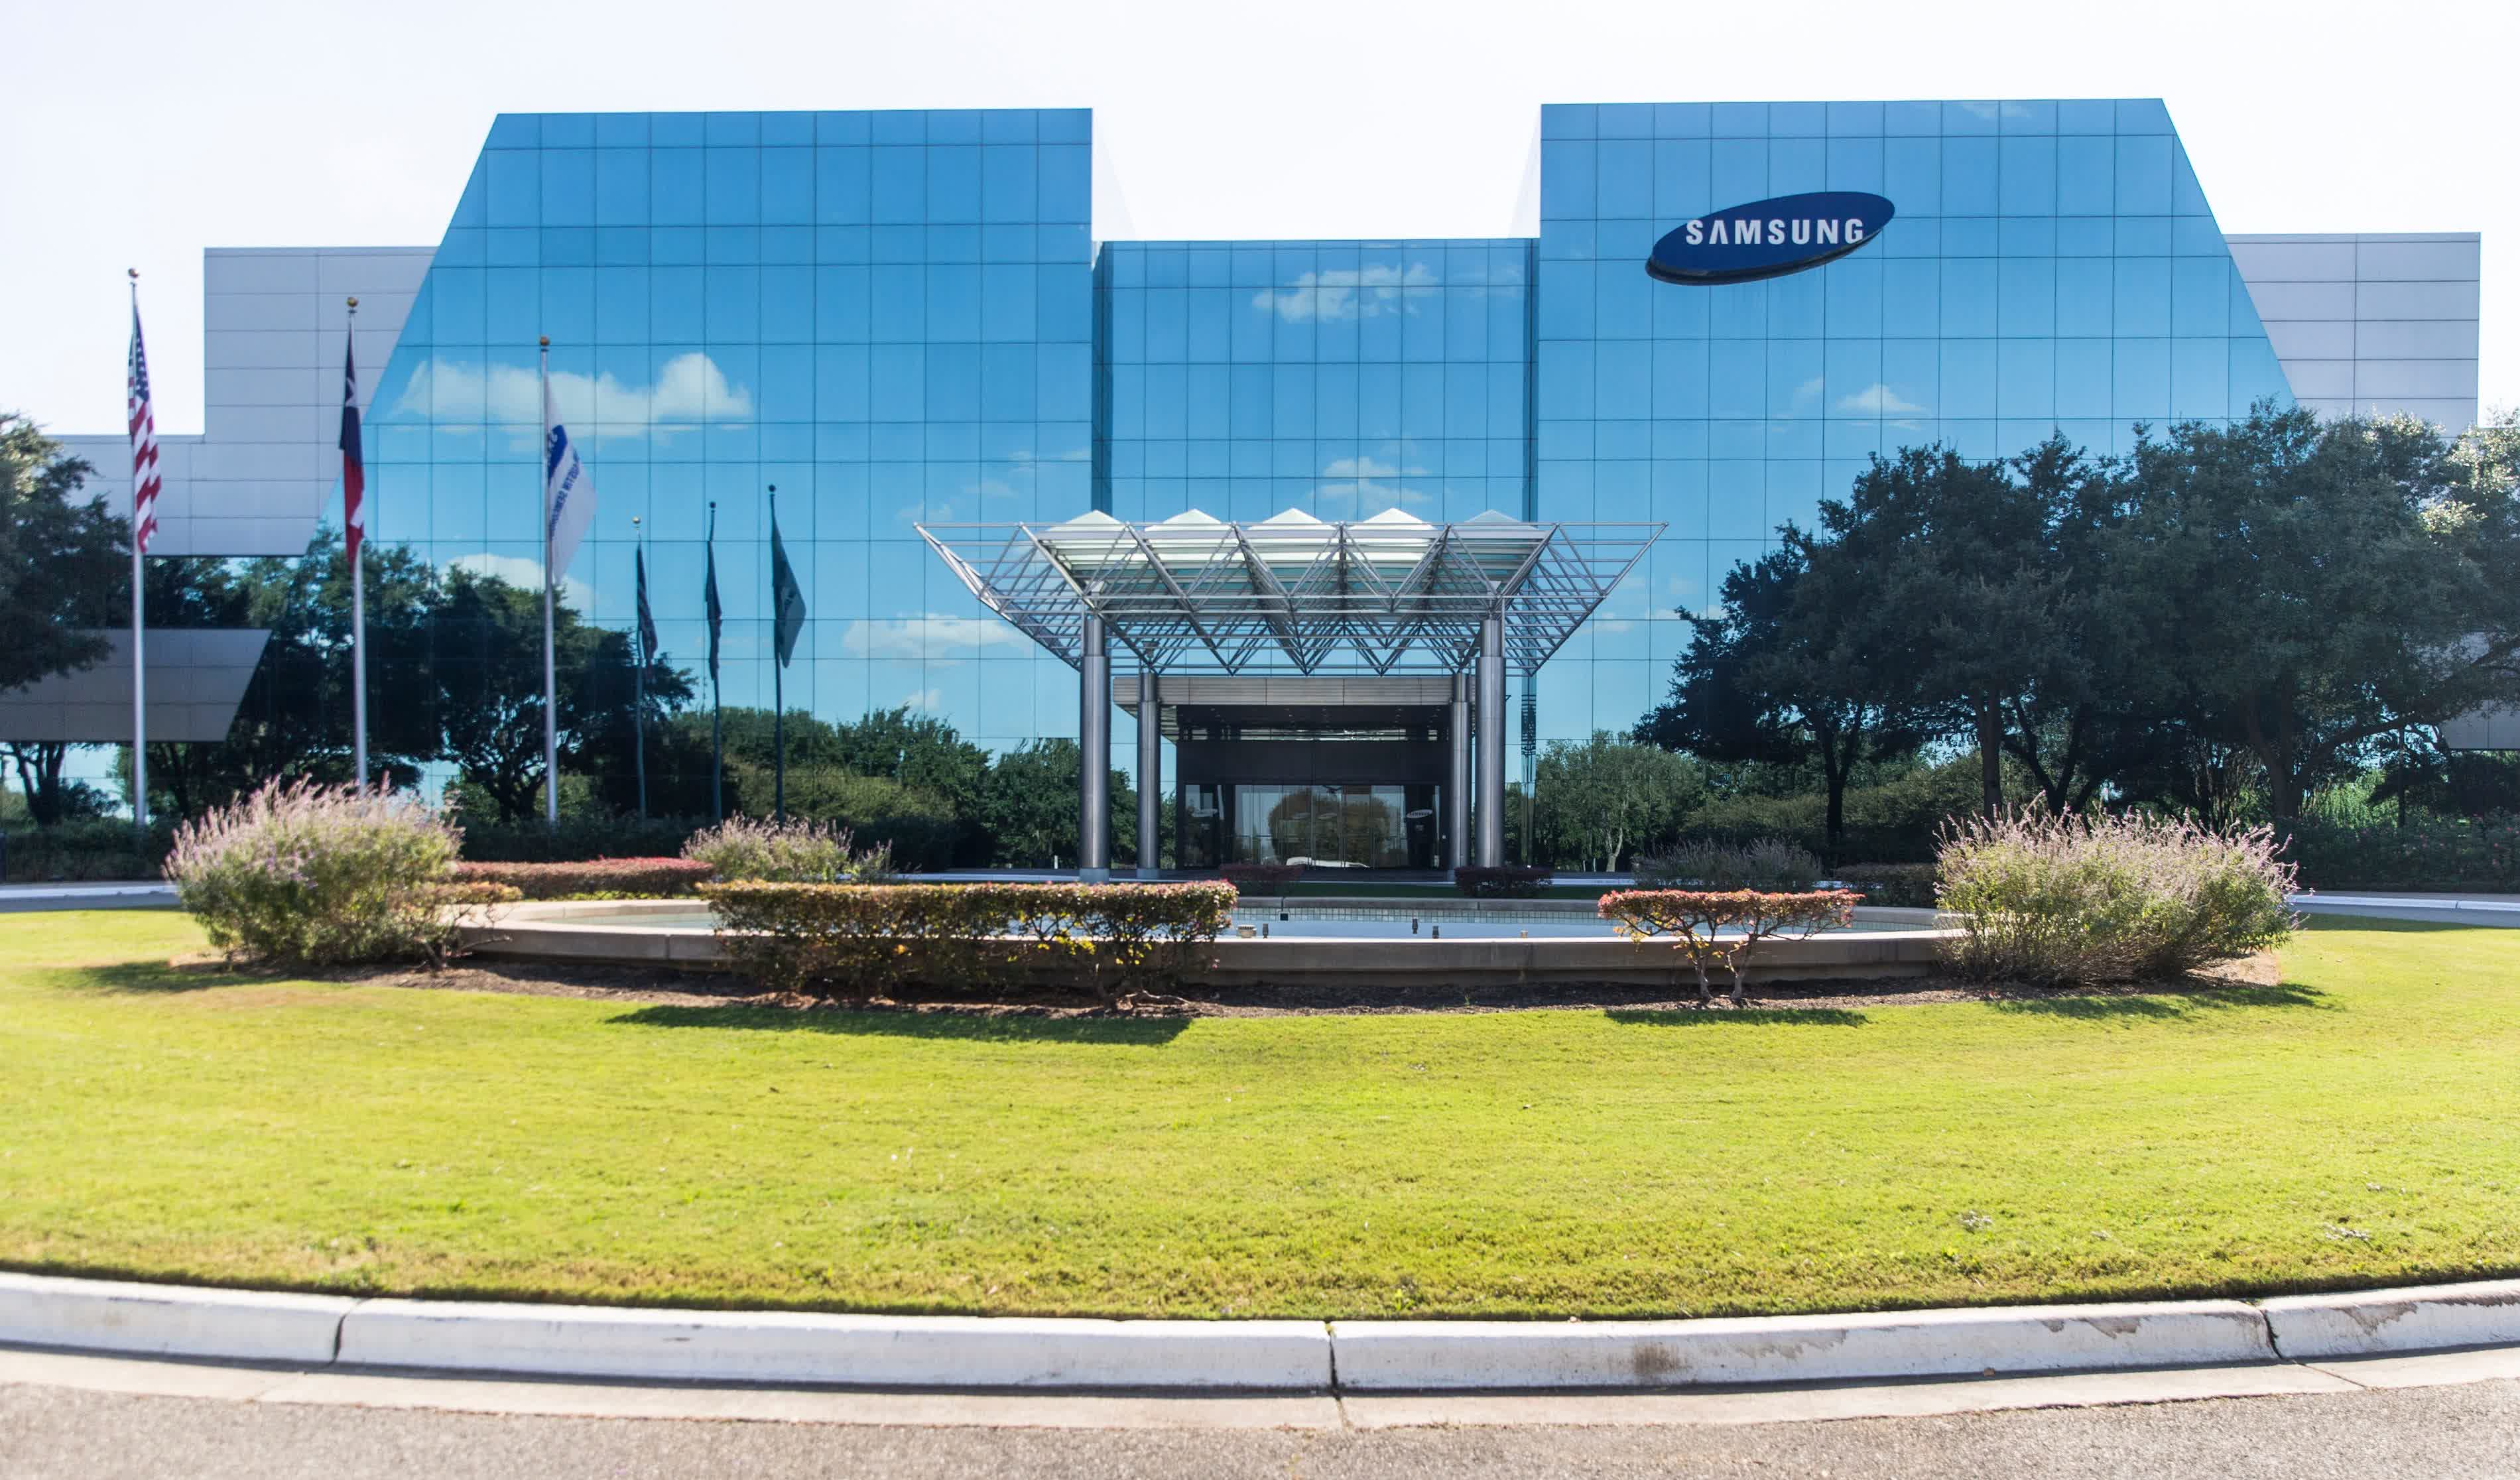 Samsung is looking to build a $17 billion chip manufacturing plant in Texas